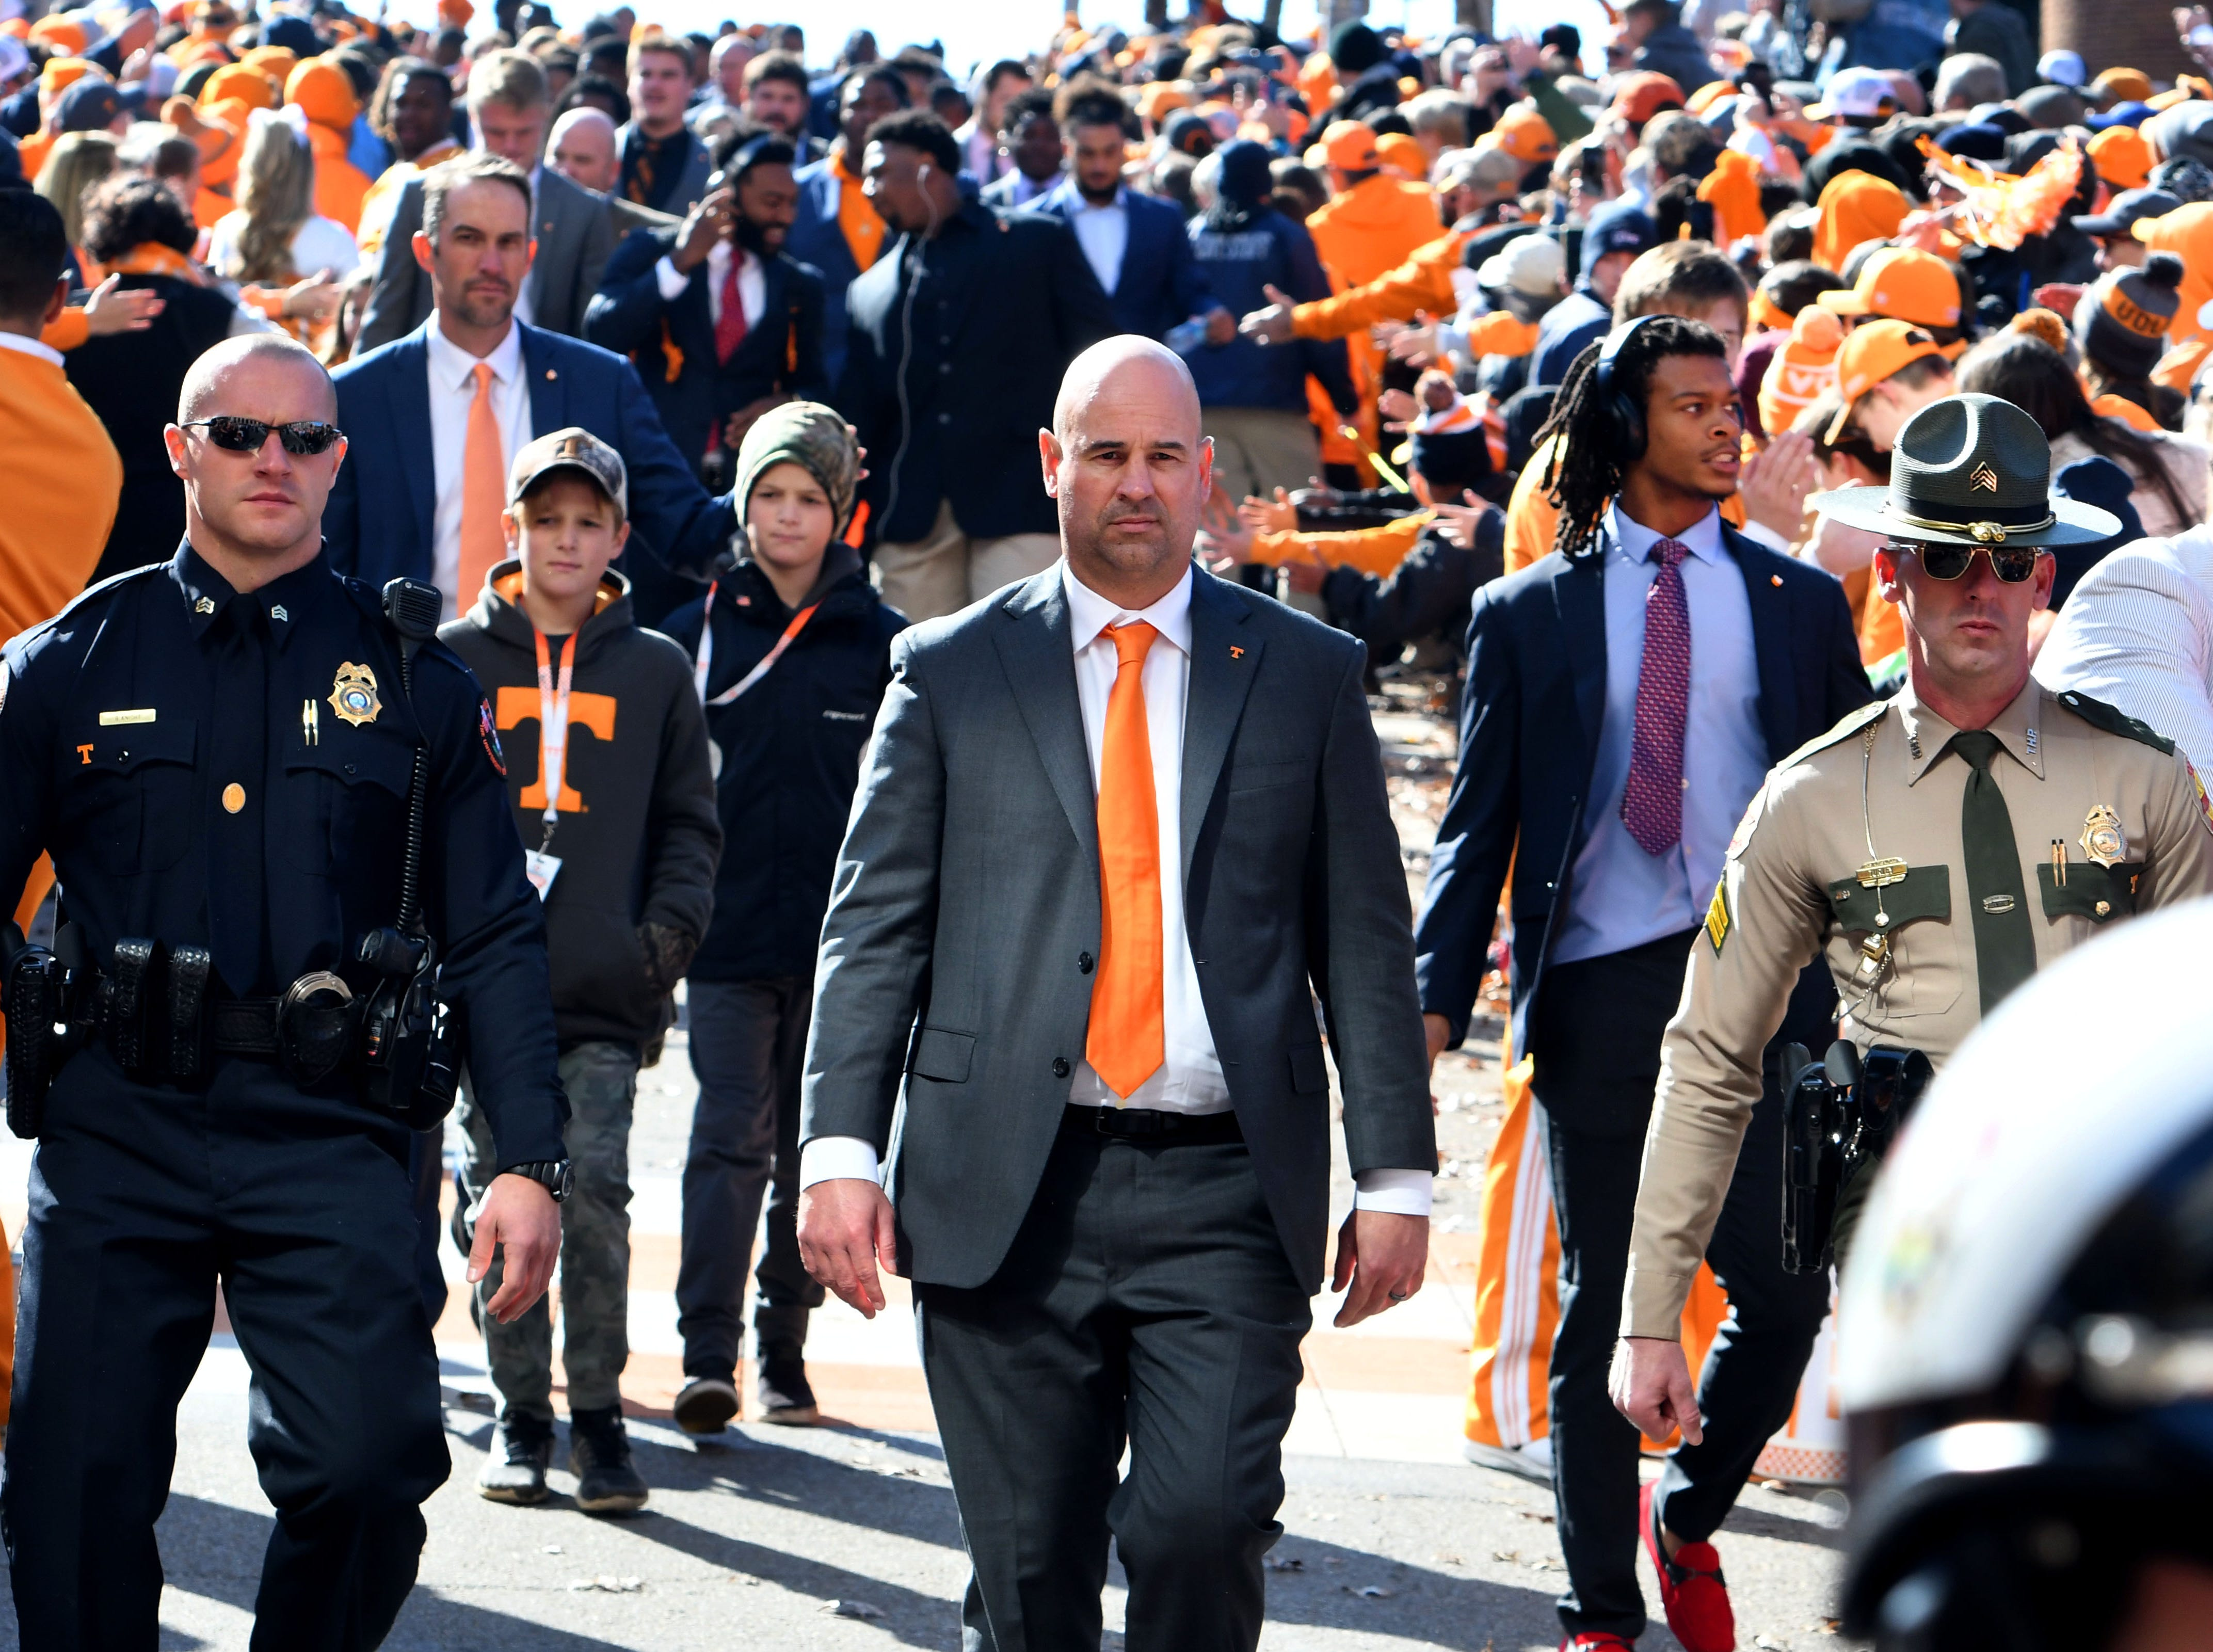 Tennessee Head Coach Jeremy Pruitt during the Vol Walk before the Kentucky game Saturday, November 10, 2018 at Neyland Stadium in Knoxville, Tenn.